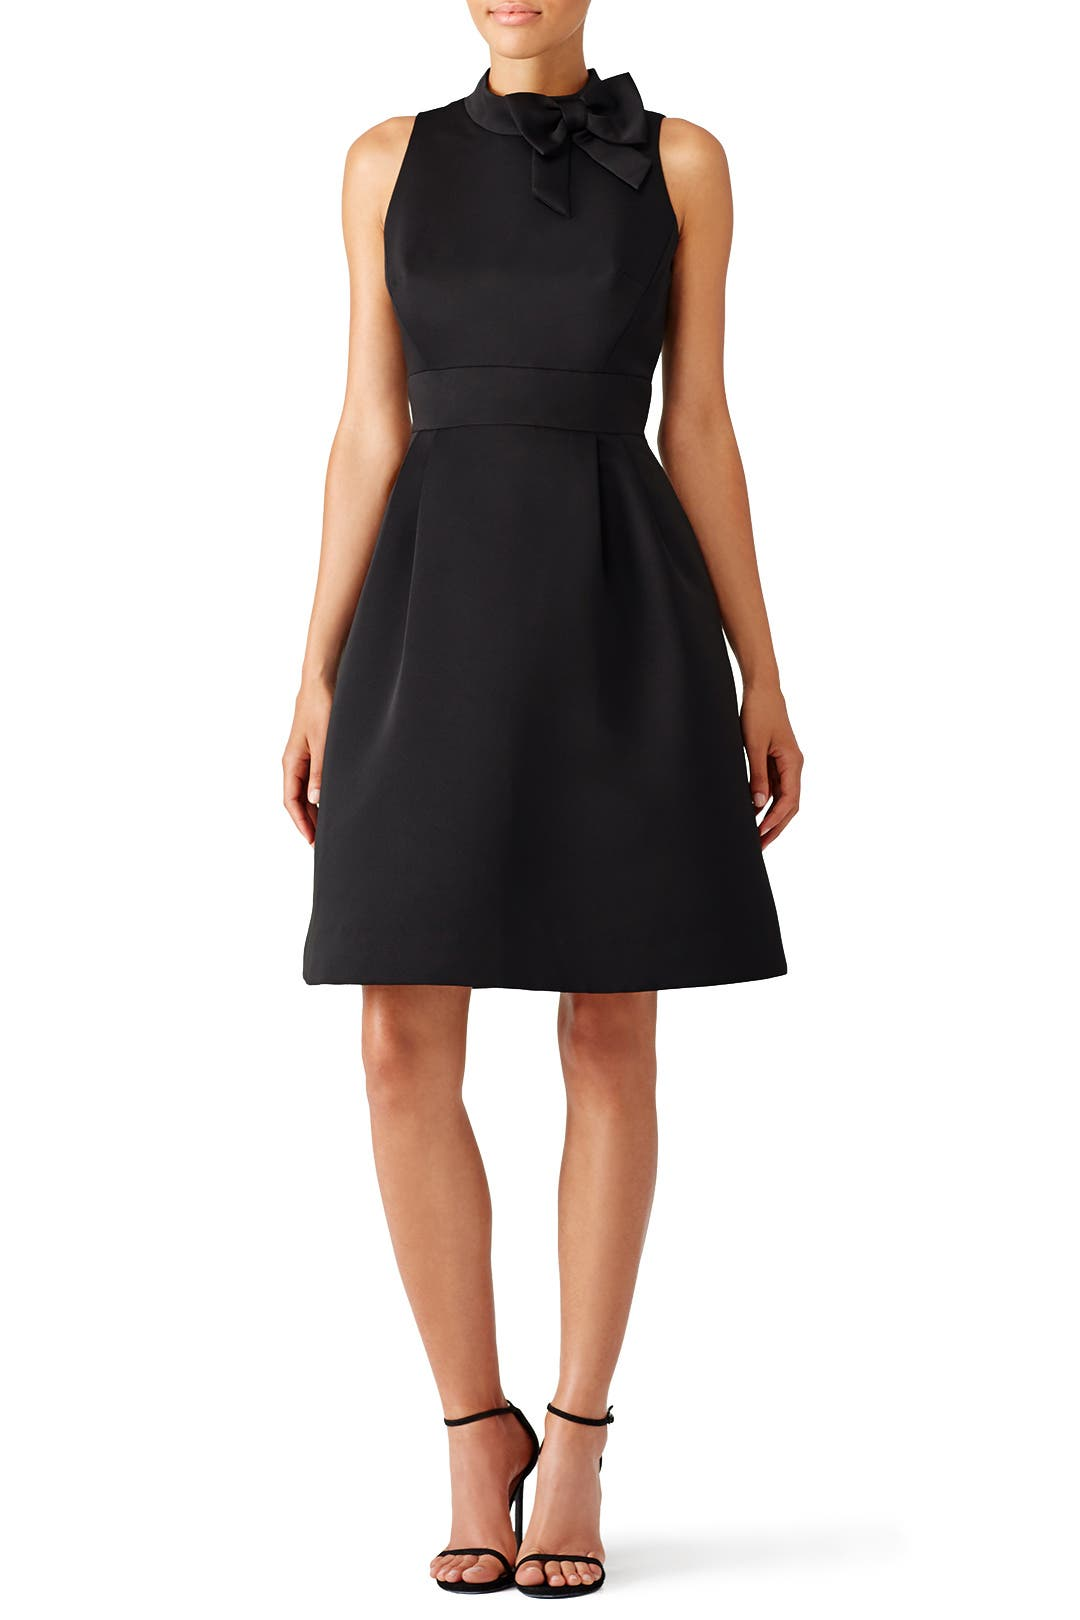 Black Bow Dress By Kate Spade New York For 50 75